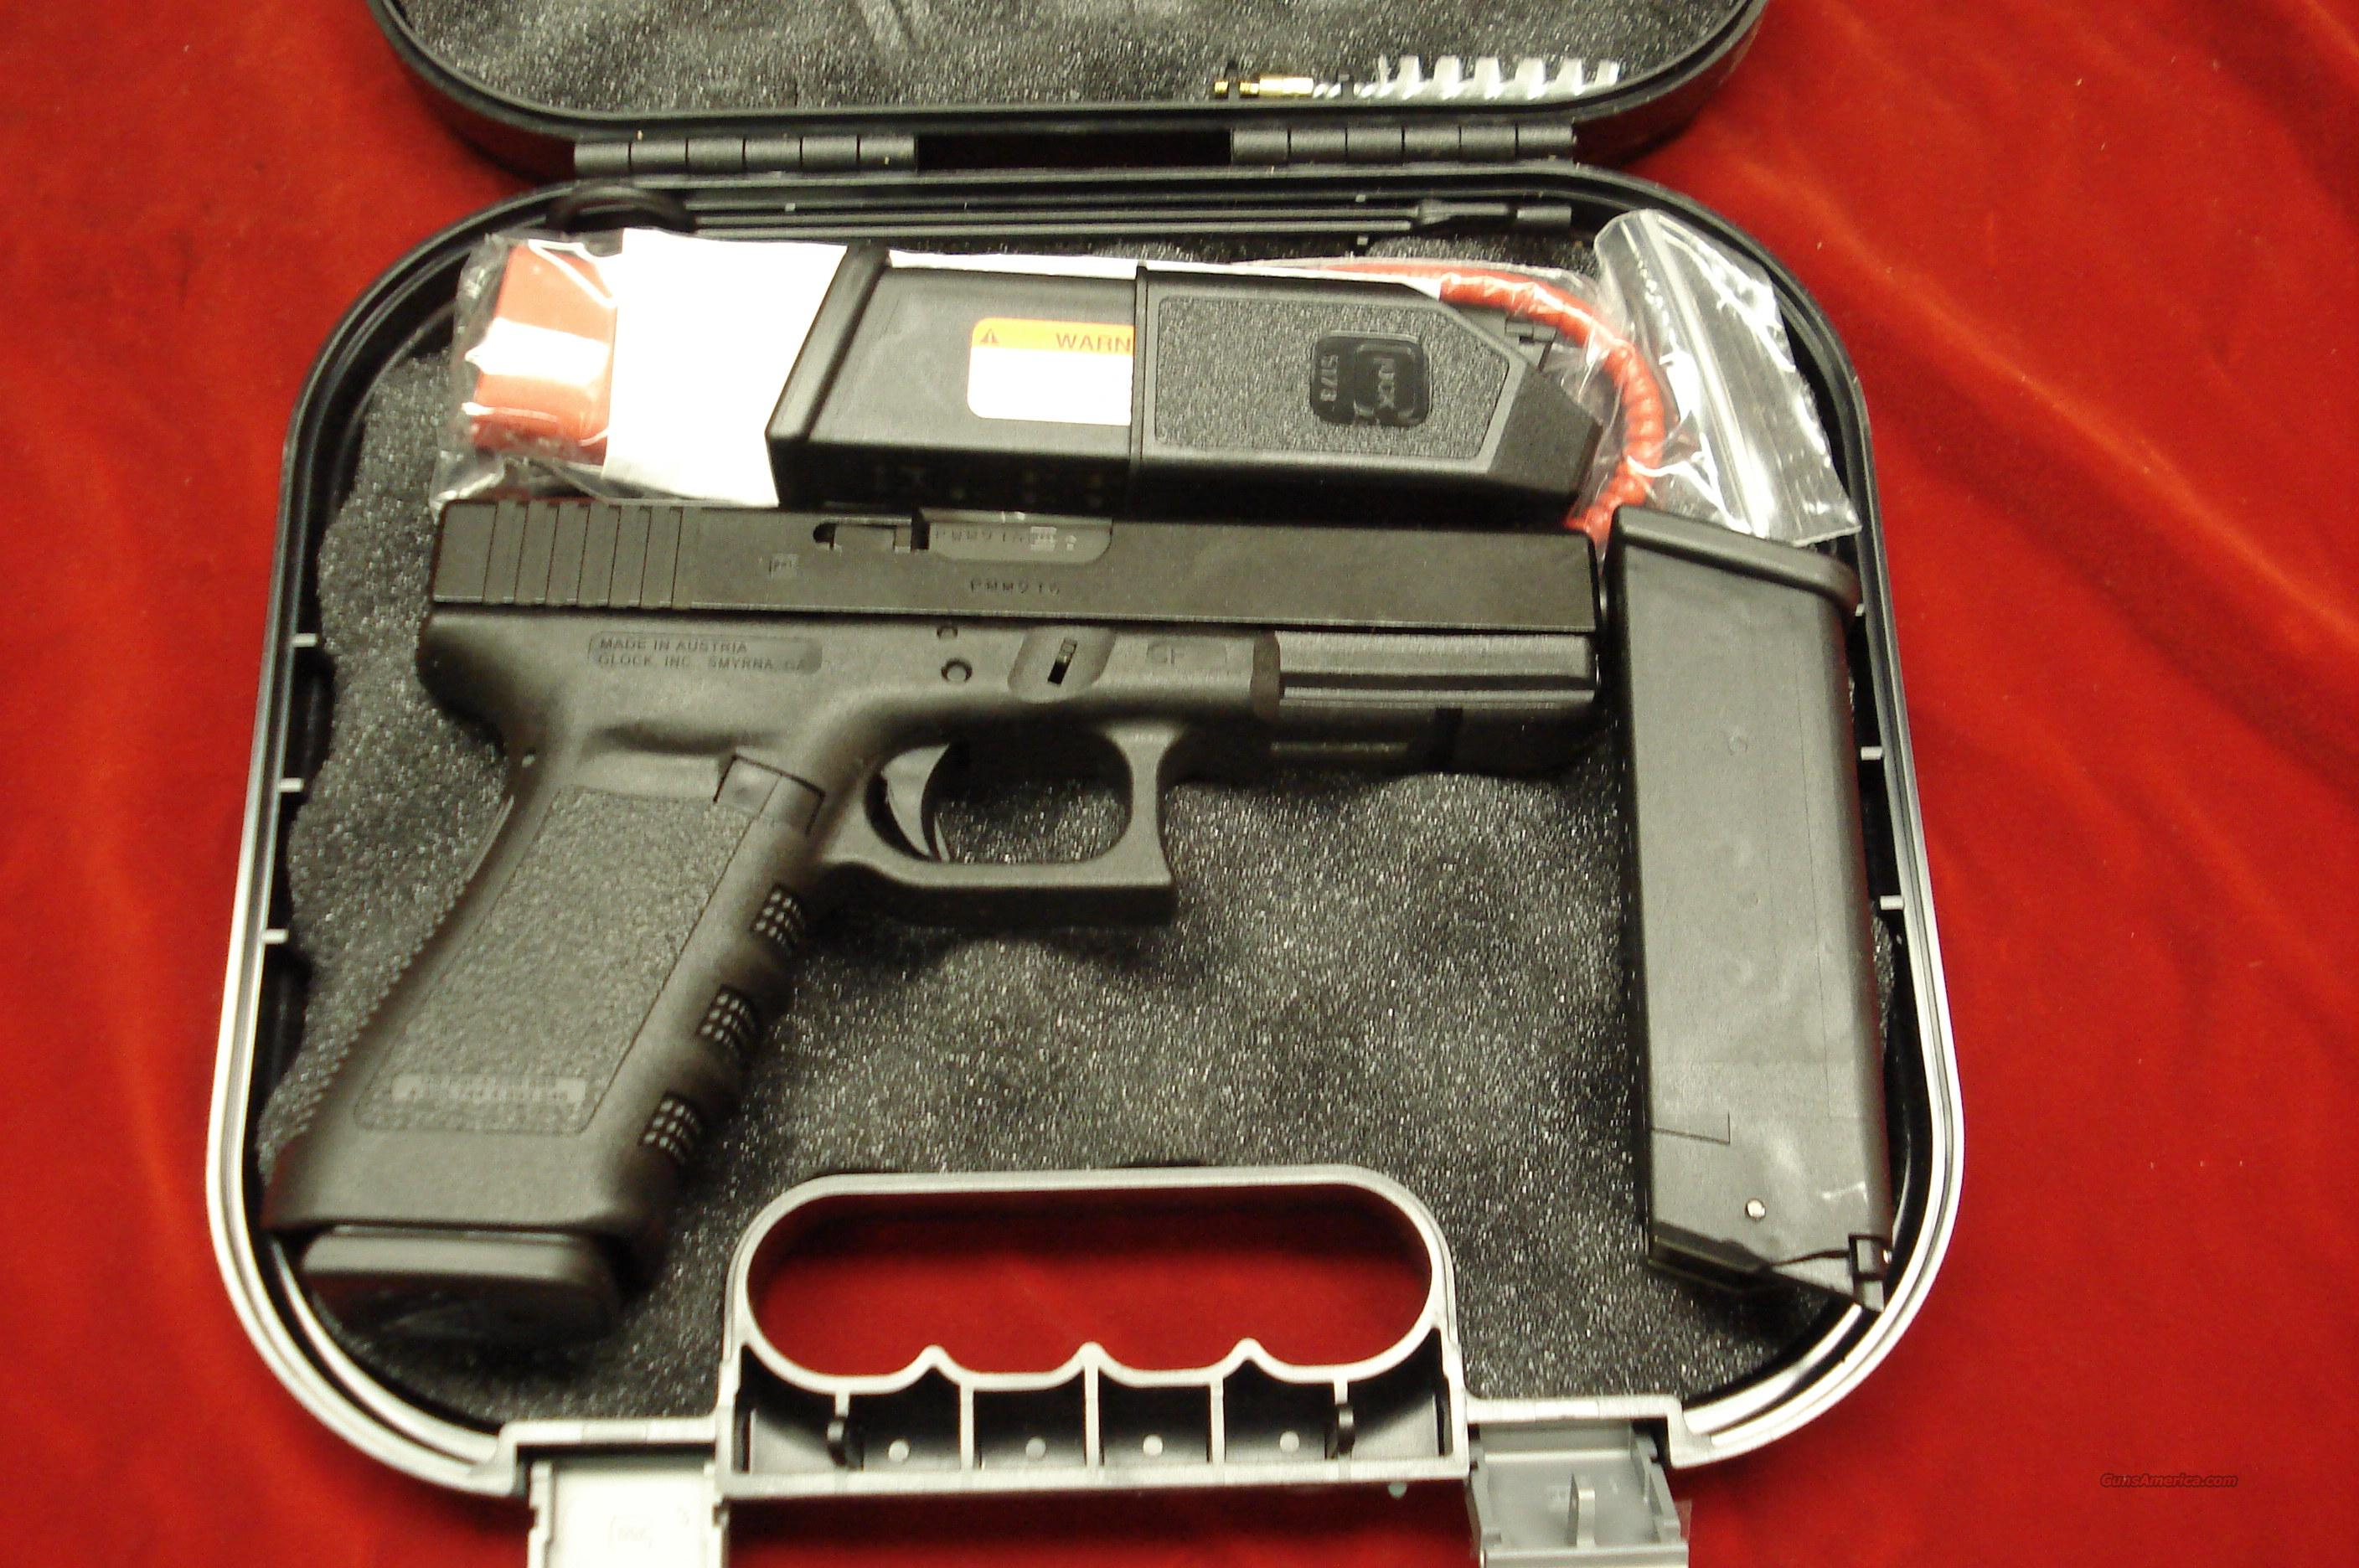 GLOCK MODEL 21SF (SLIM FRAME) 45ACP FACTORY NIGHT SIGHTS AND 3 HIGH CAPACITY MAGAZINES NEW   Guns > Pistols > Glock Pistols > 20/21